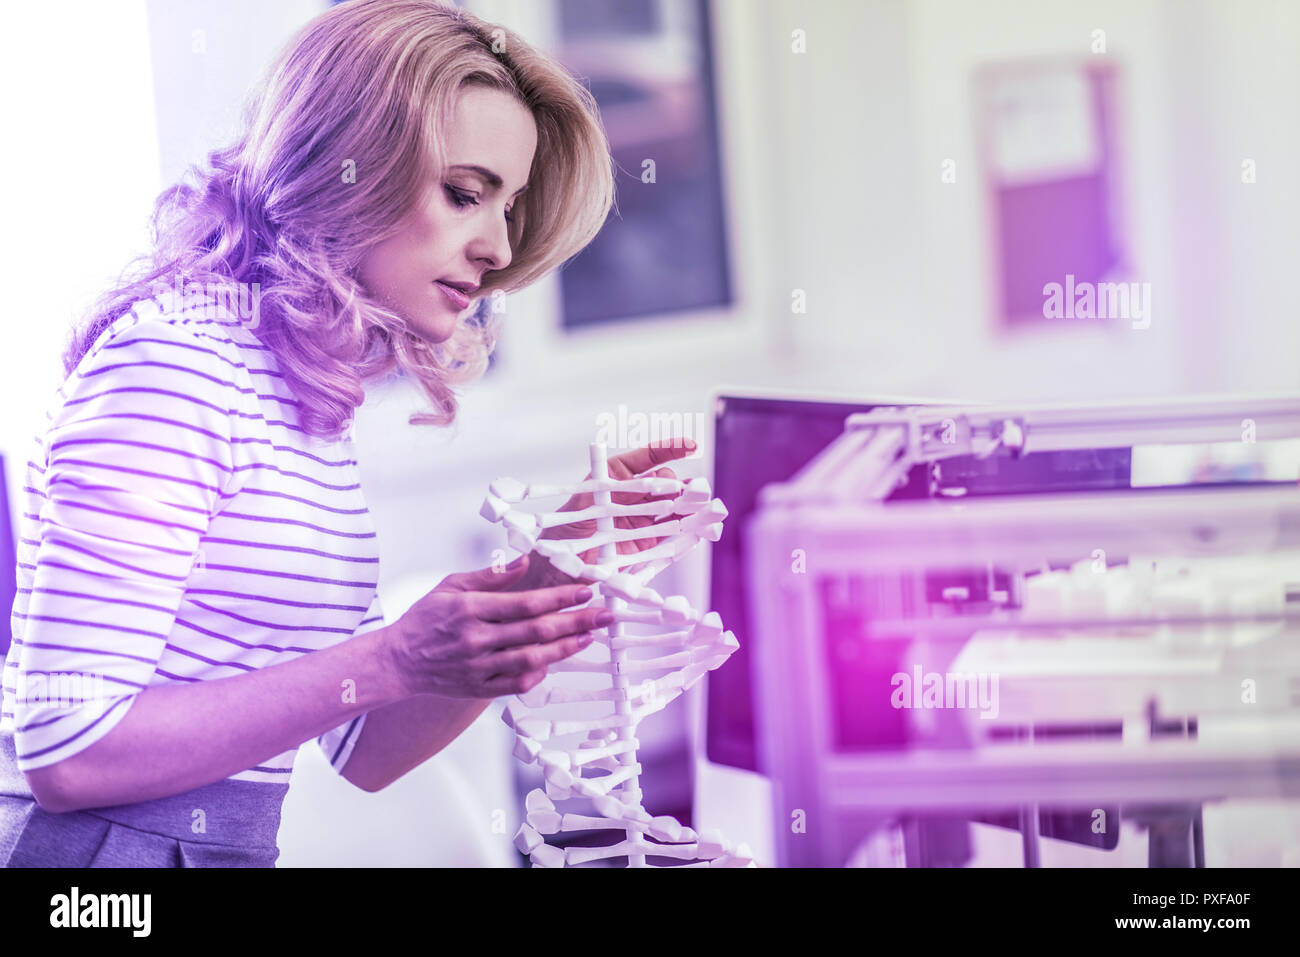 Blonde-haired experienced chemist looking at the model of molecular chain - Stock Image